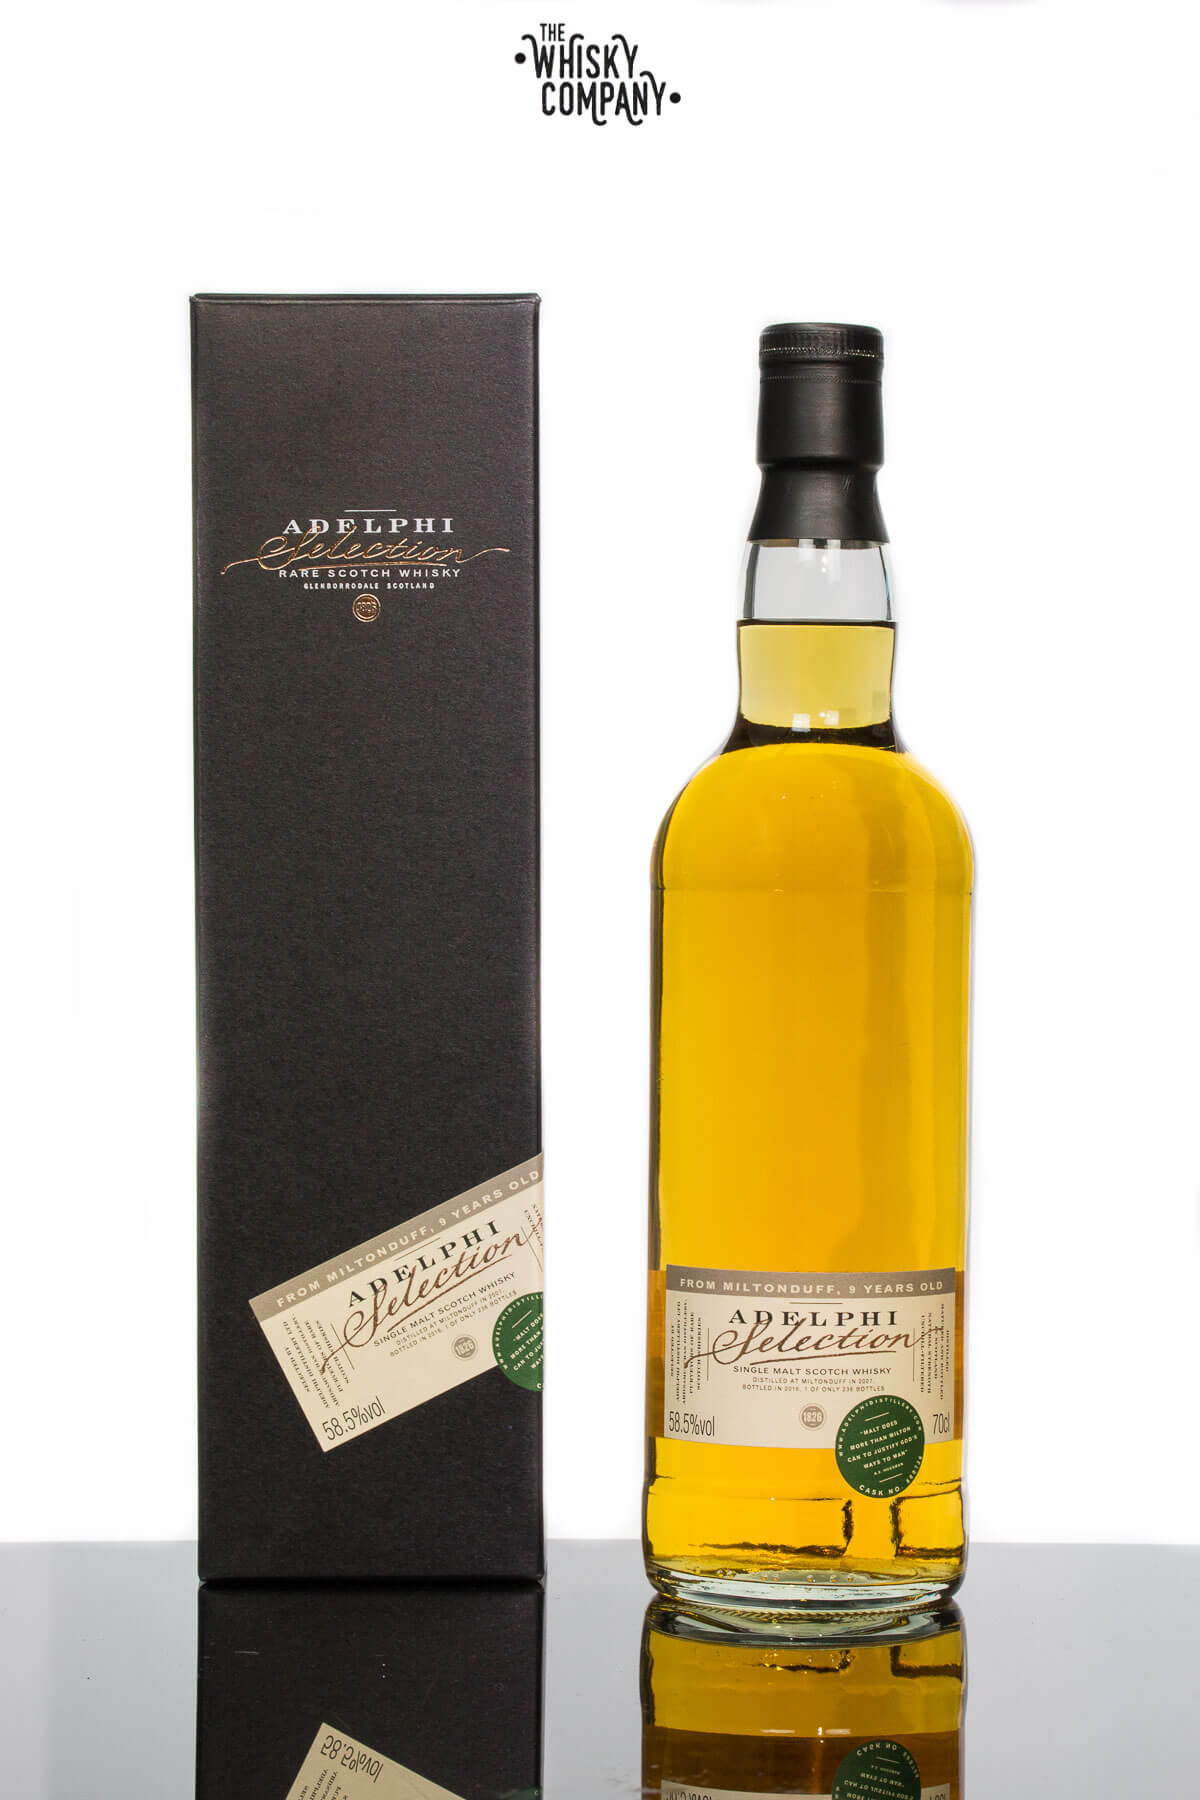 Miltonduff 9 Years Old 2007 Speyside Scotch Whisky (Adelphi) (700ml)